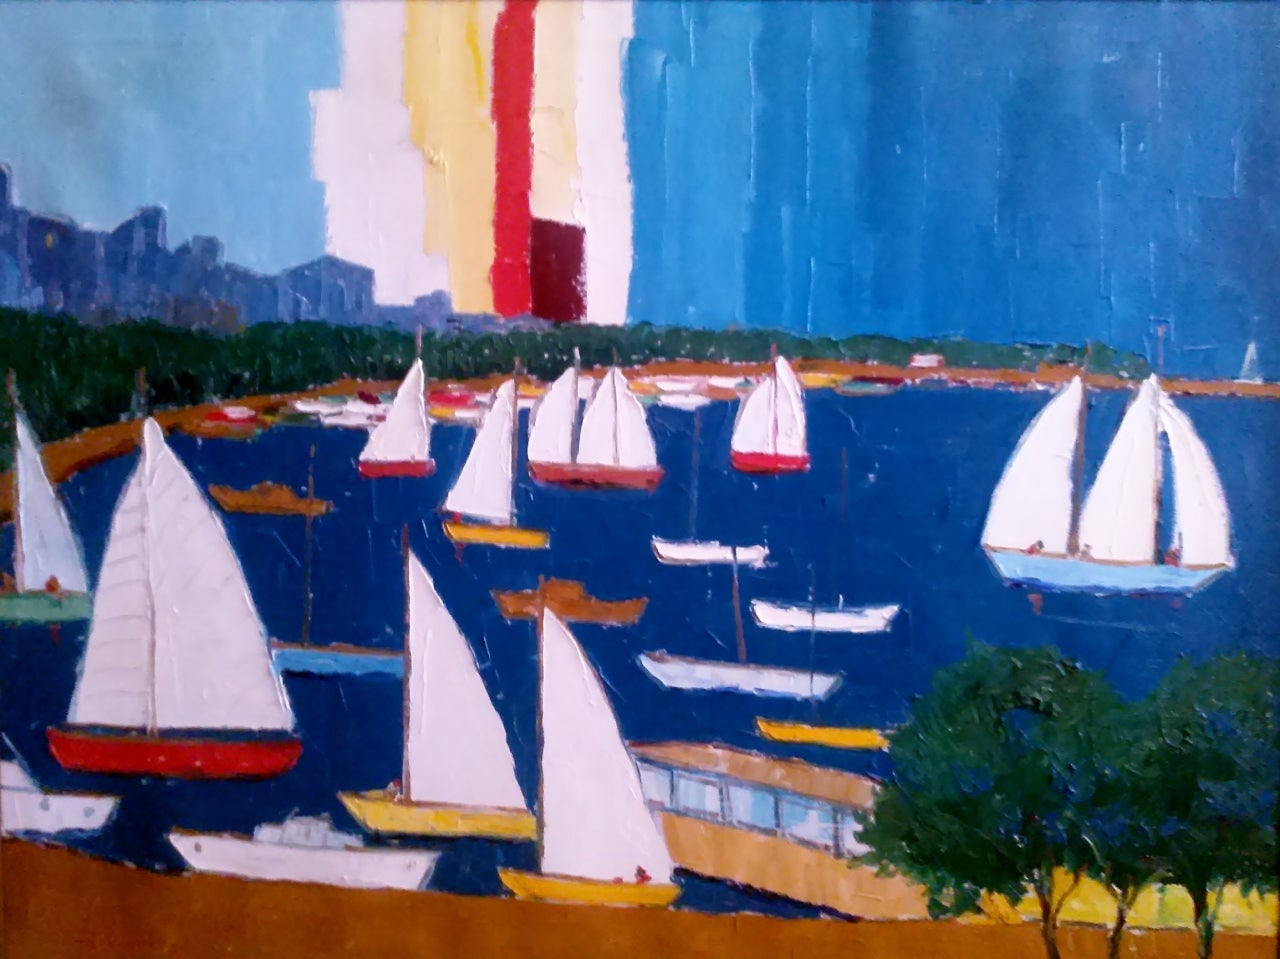 Campanile Landscape Painting - Marine Oil Painting Sailing Scene in Harbor 1970